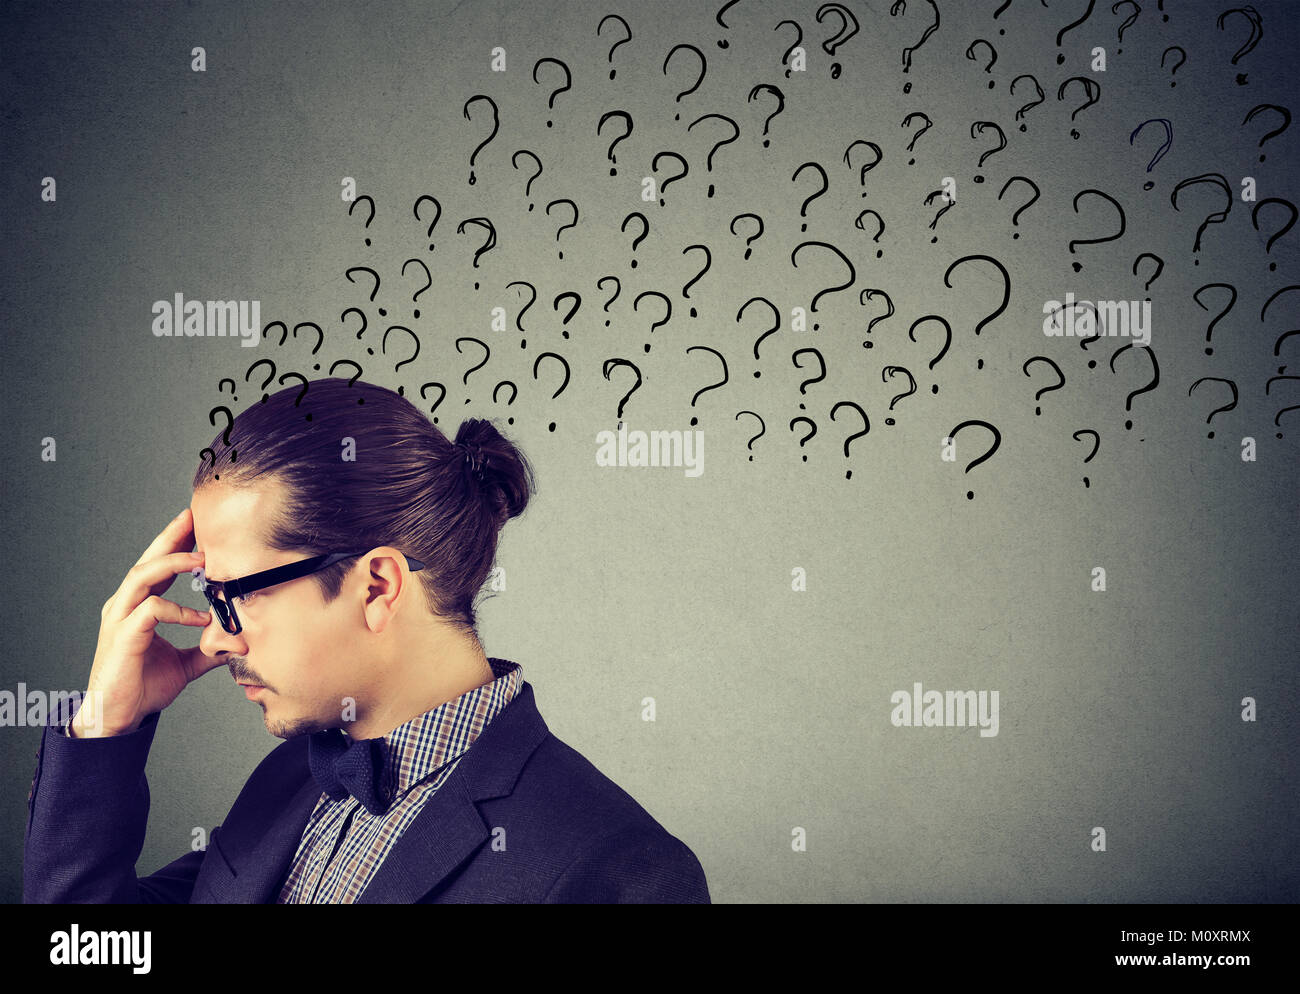 Elegant man in eyeglasses rubbing forehead with question marks on gray backdrop. - Stock Image